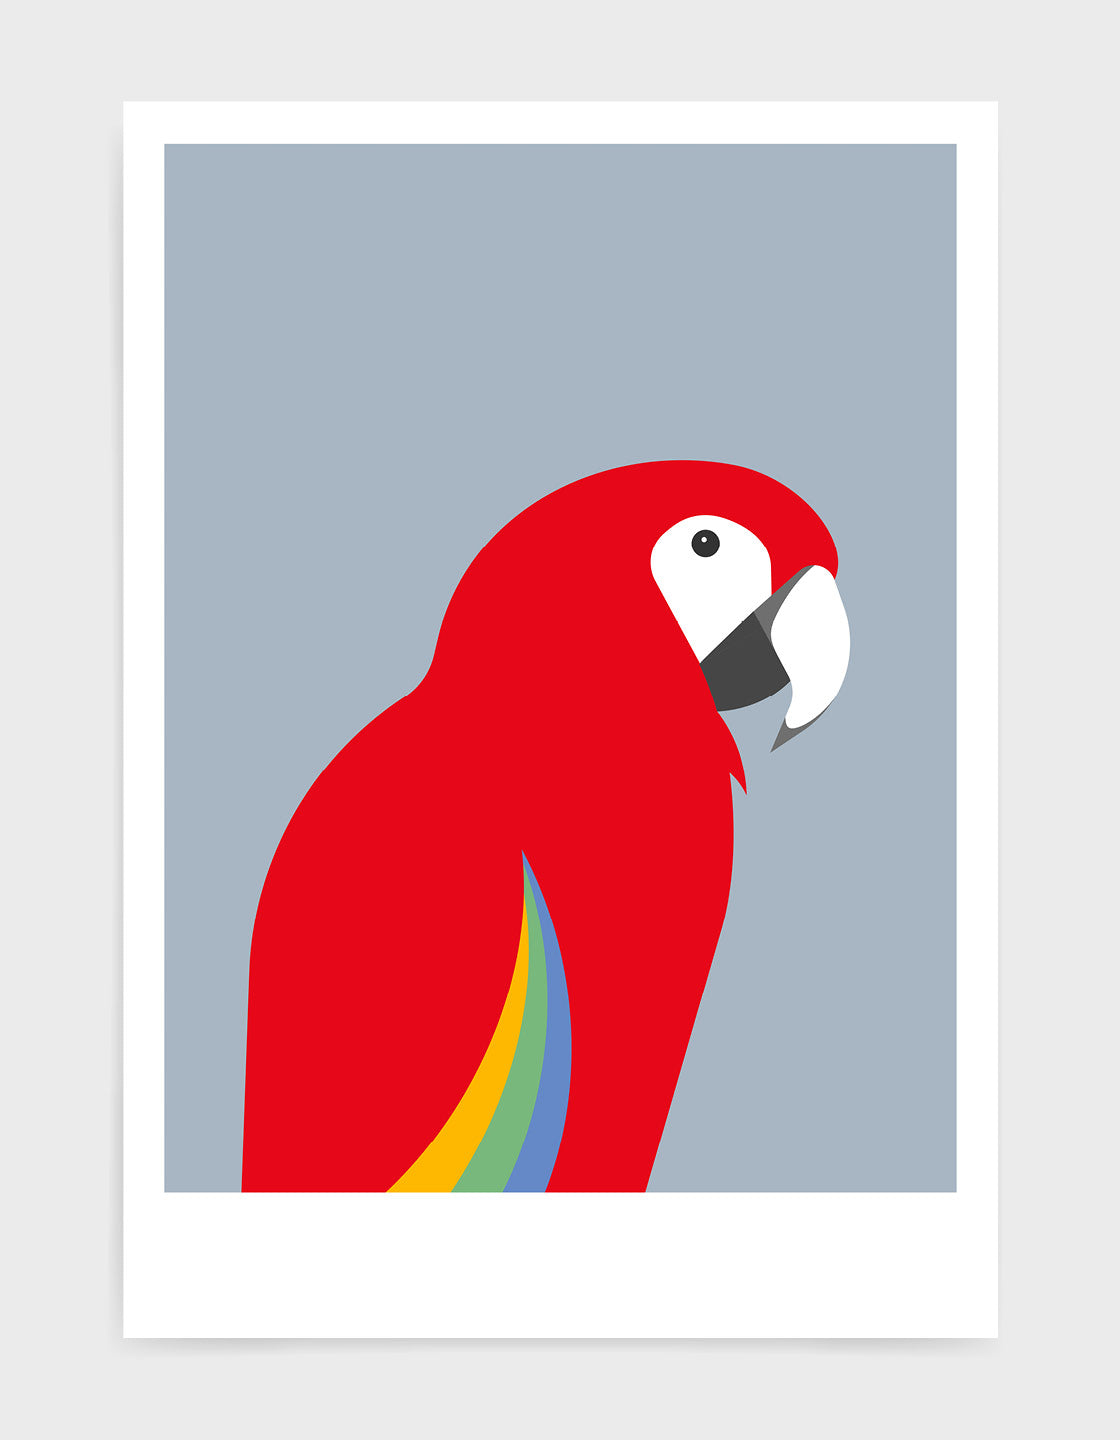 art print of a macaw parrot against a light grey background